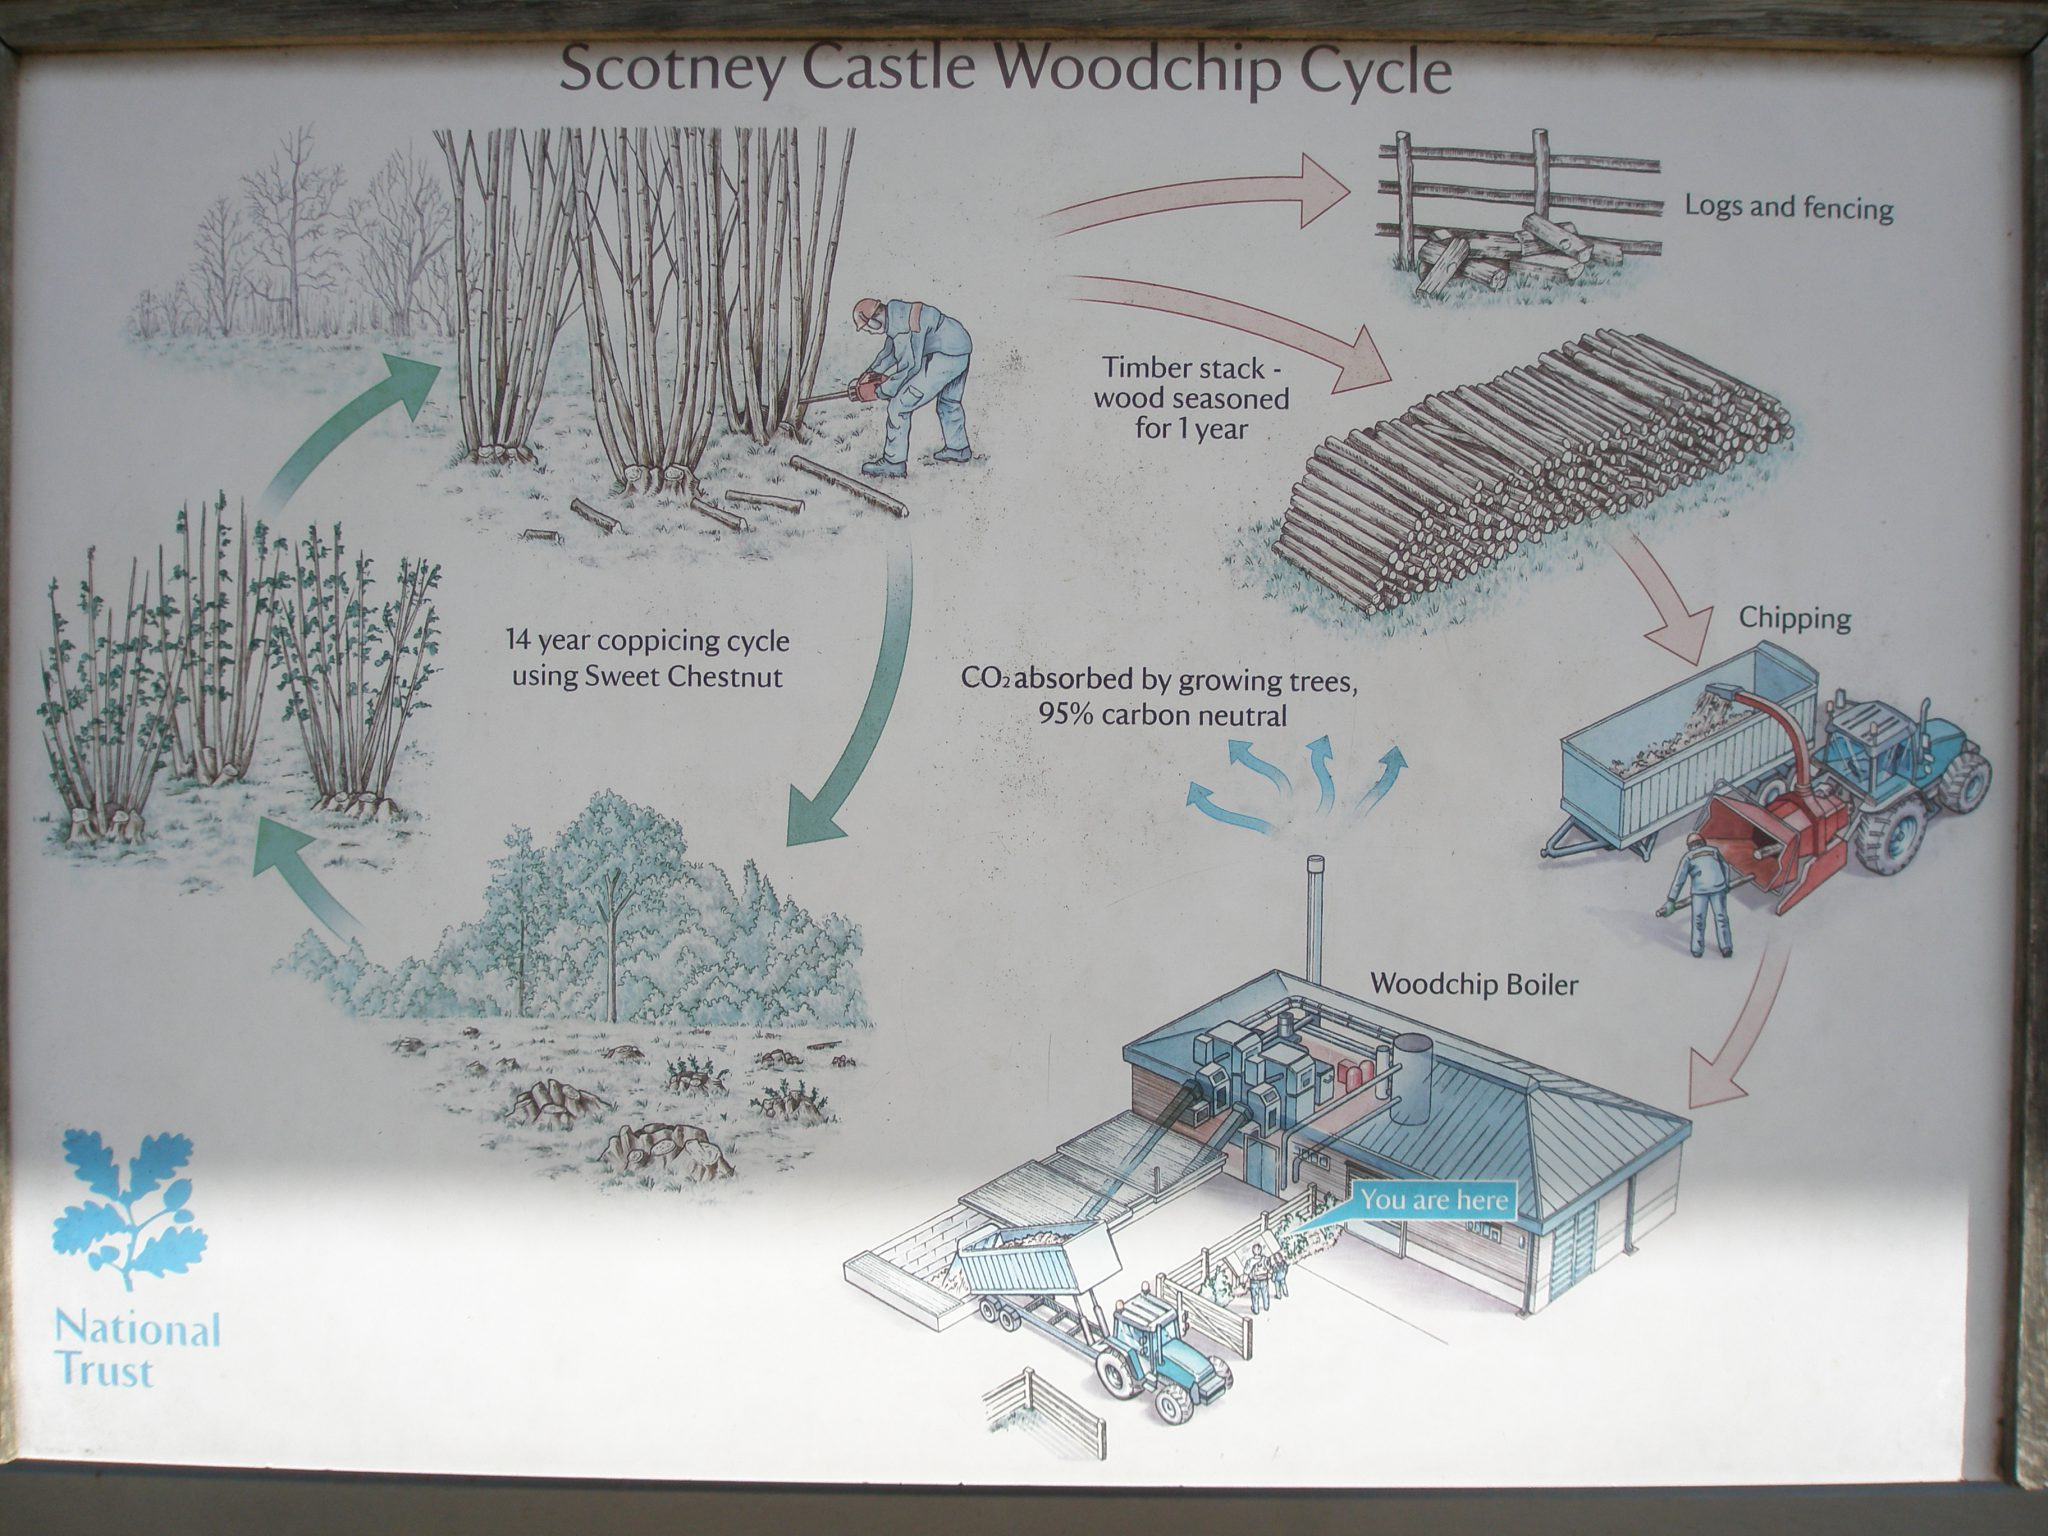 The Castle's woodlands are being managed for sustainable fuel to feed the Scotney biomass boiler.